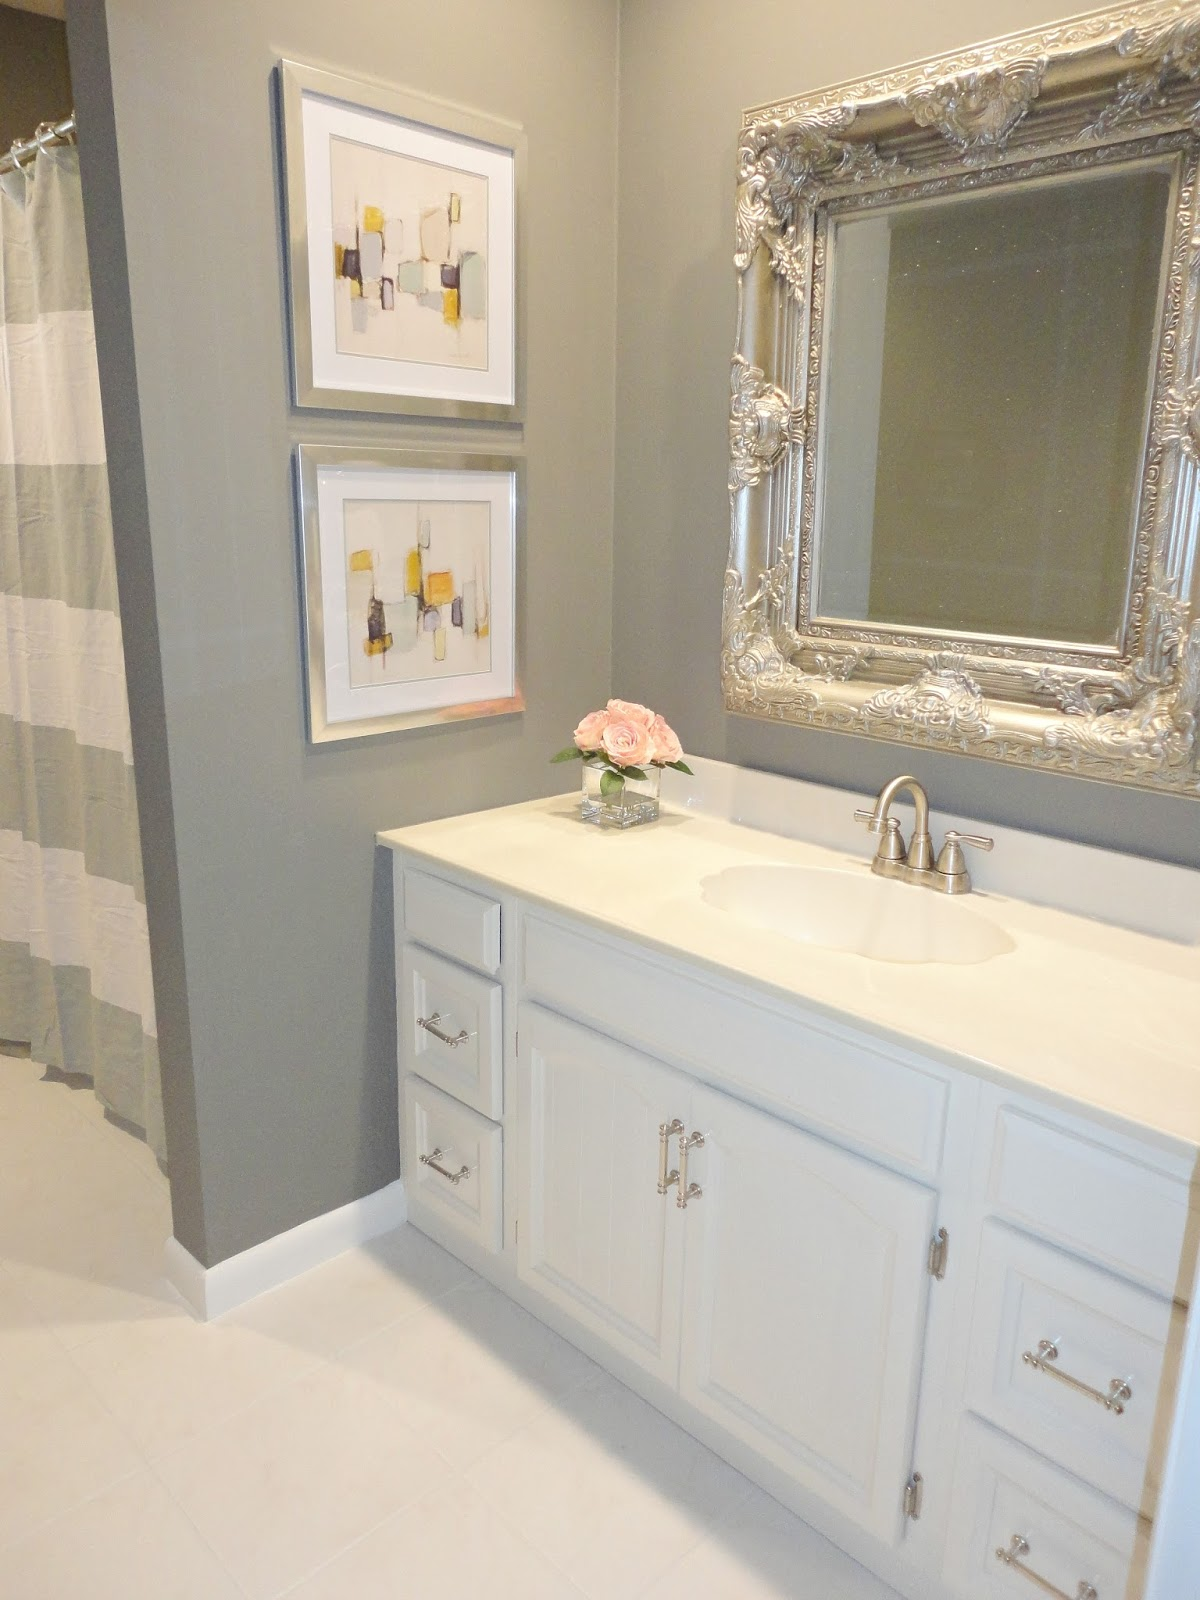 Bathroom Remodel On A Budget Livelovediy Diy Bathroom Remodel On A Budget